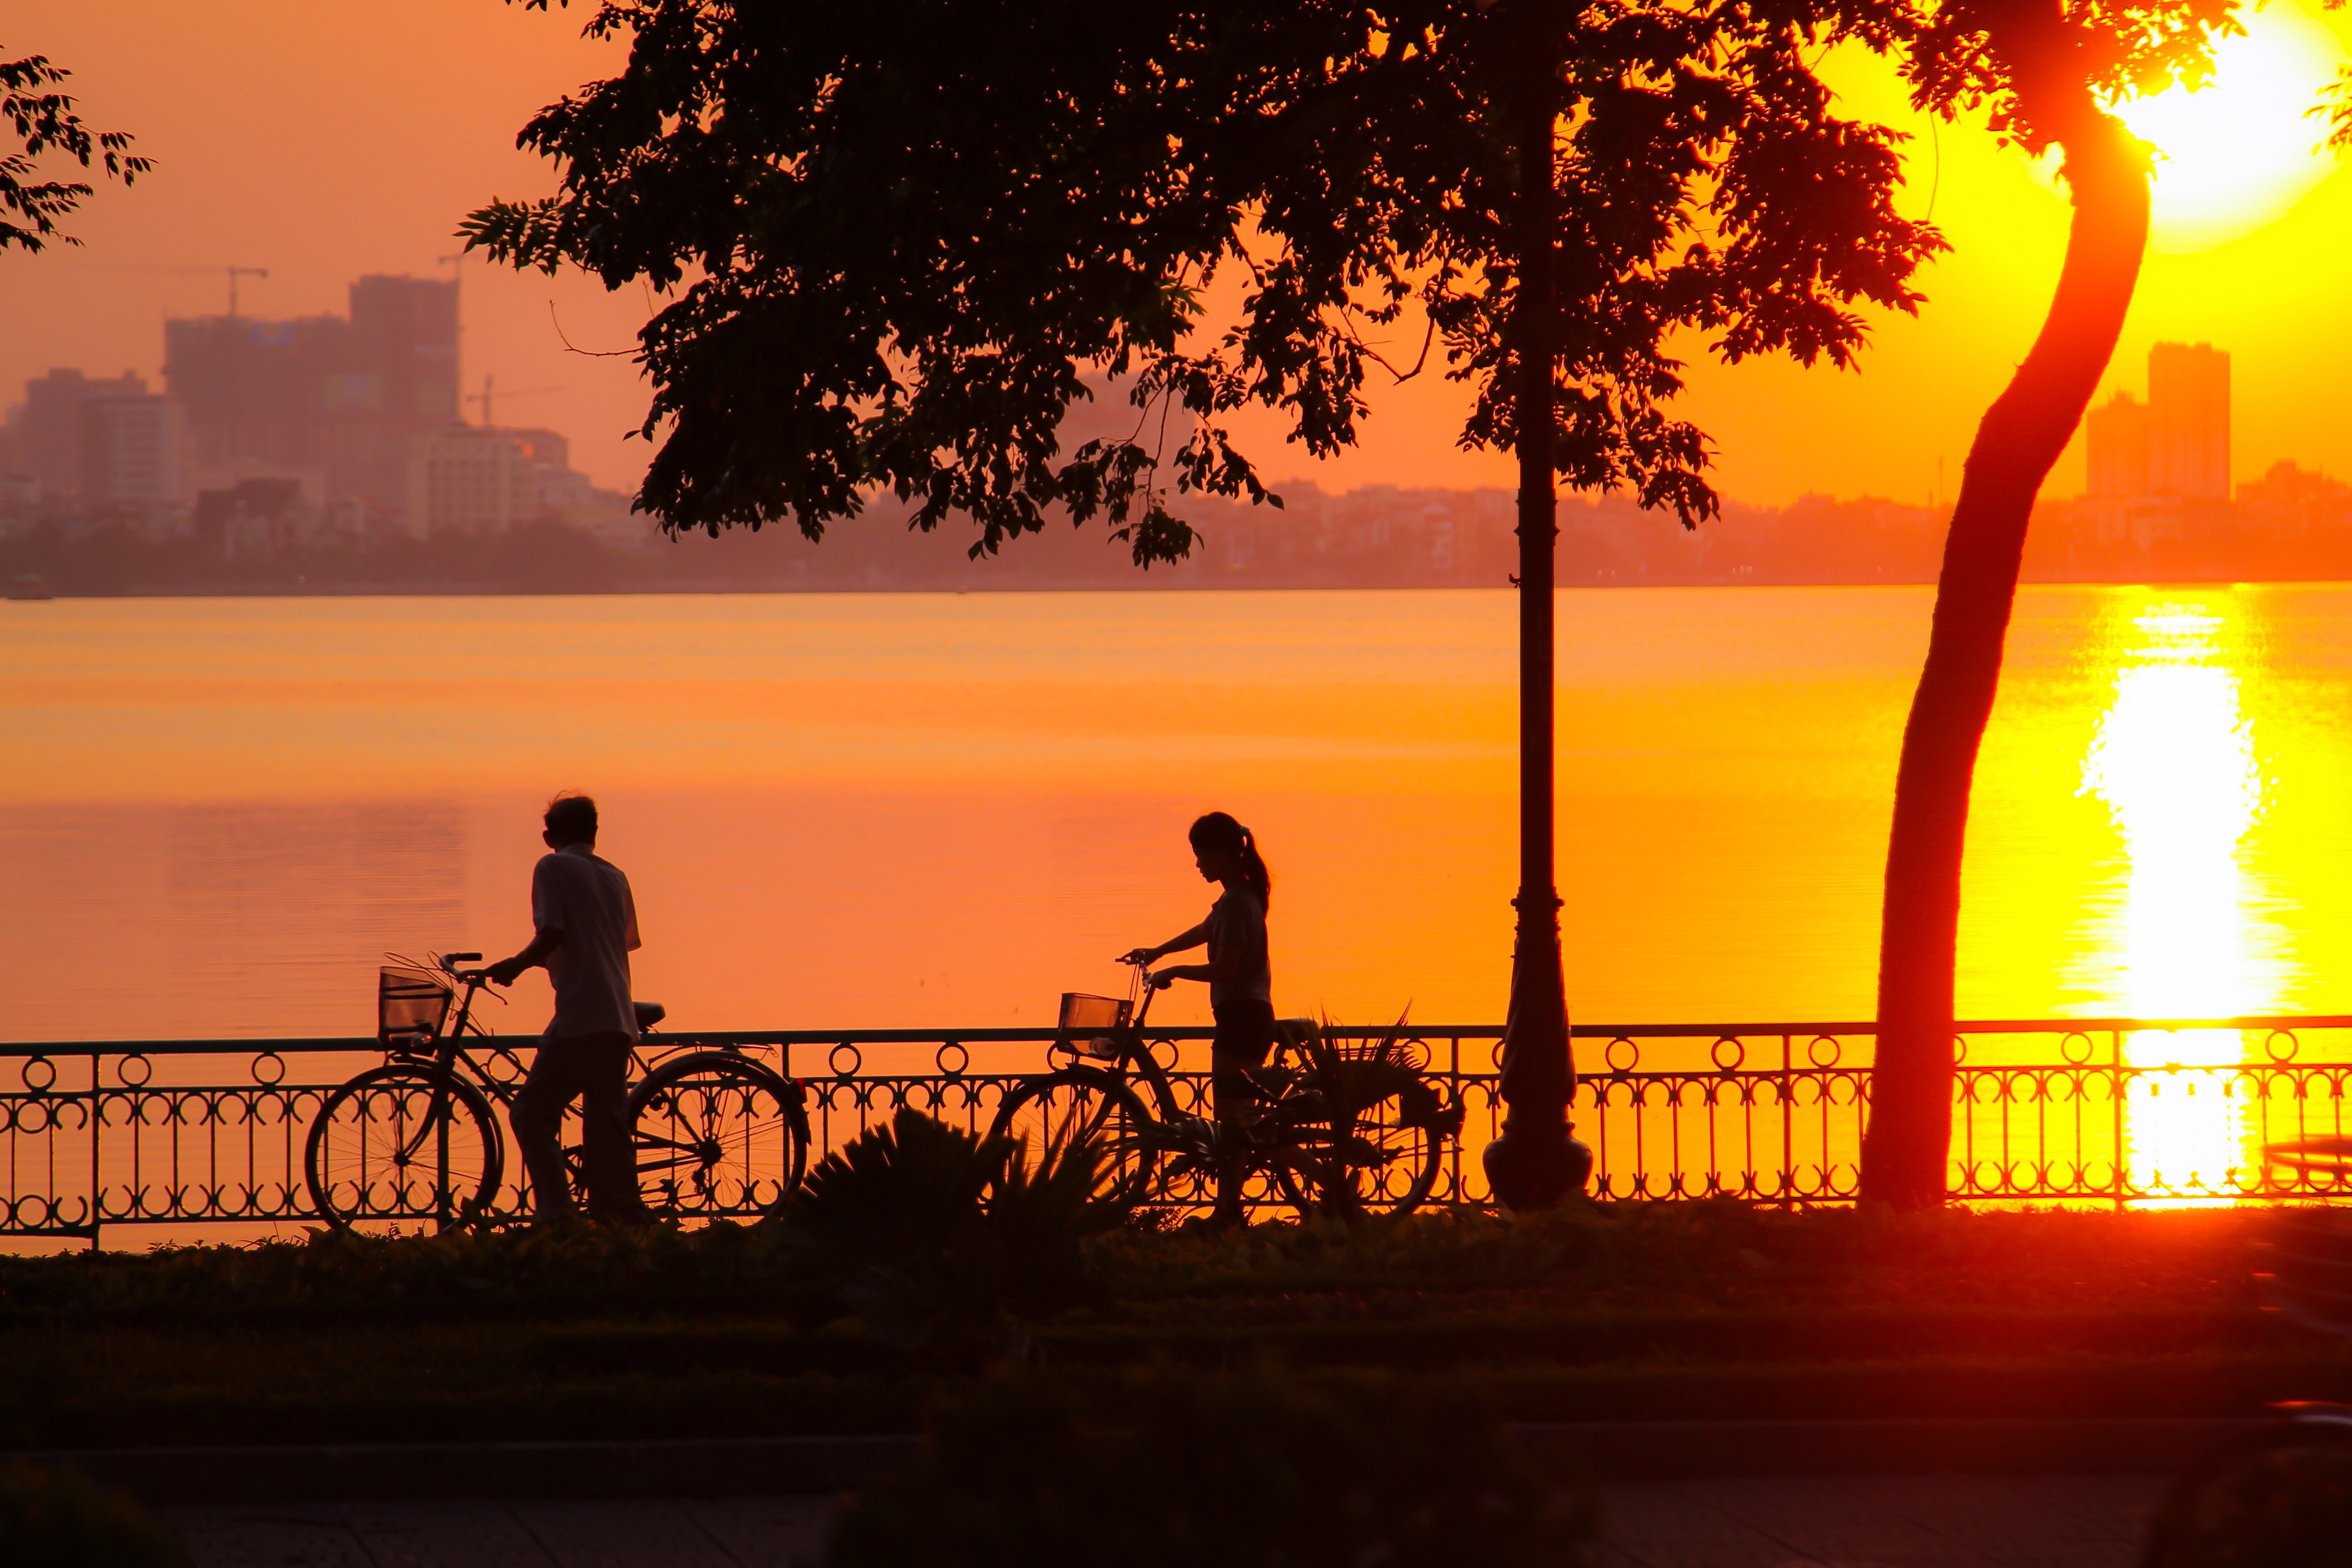 Sunset and 2 cyclists in Hanoi, Vietnam image - Free stock ...